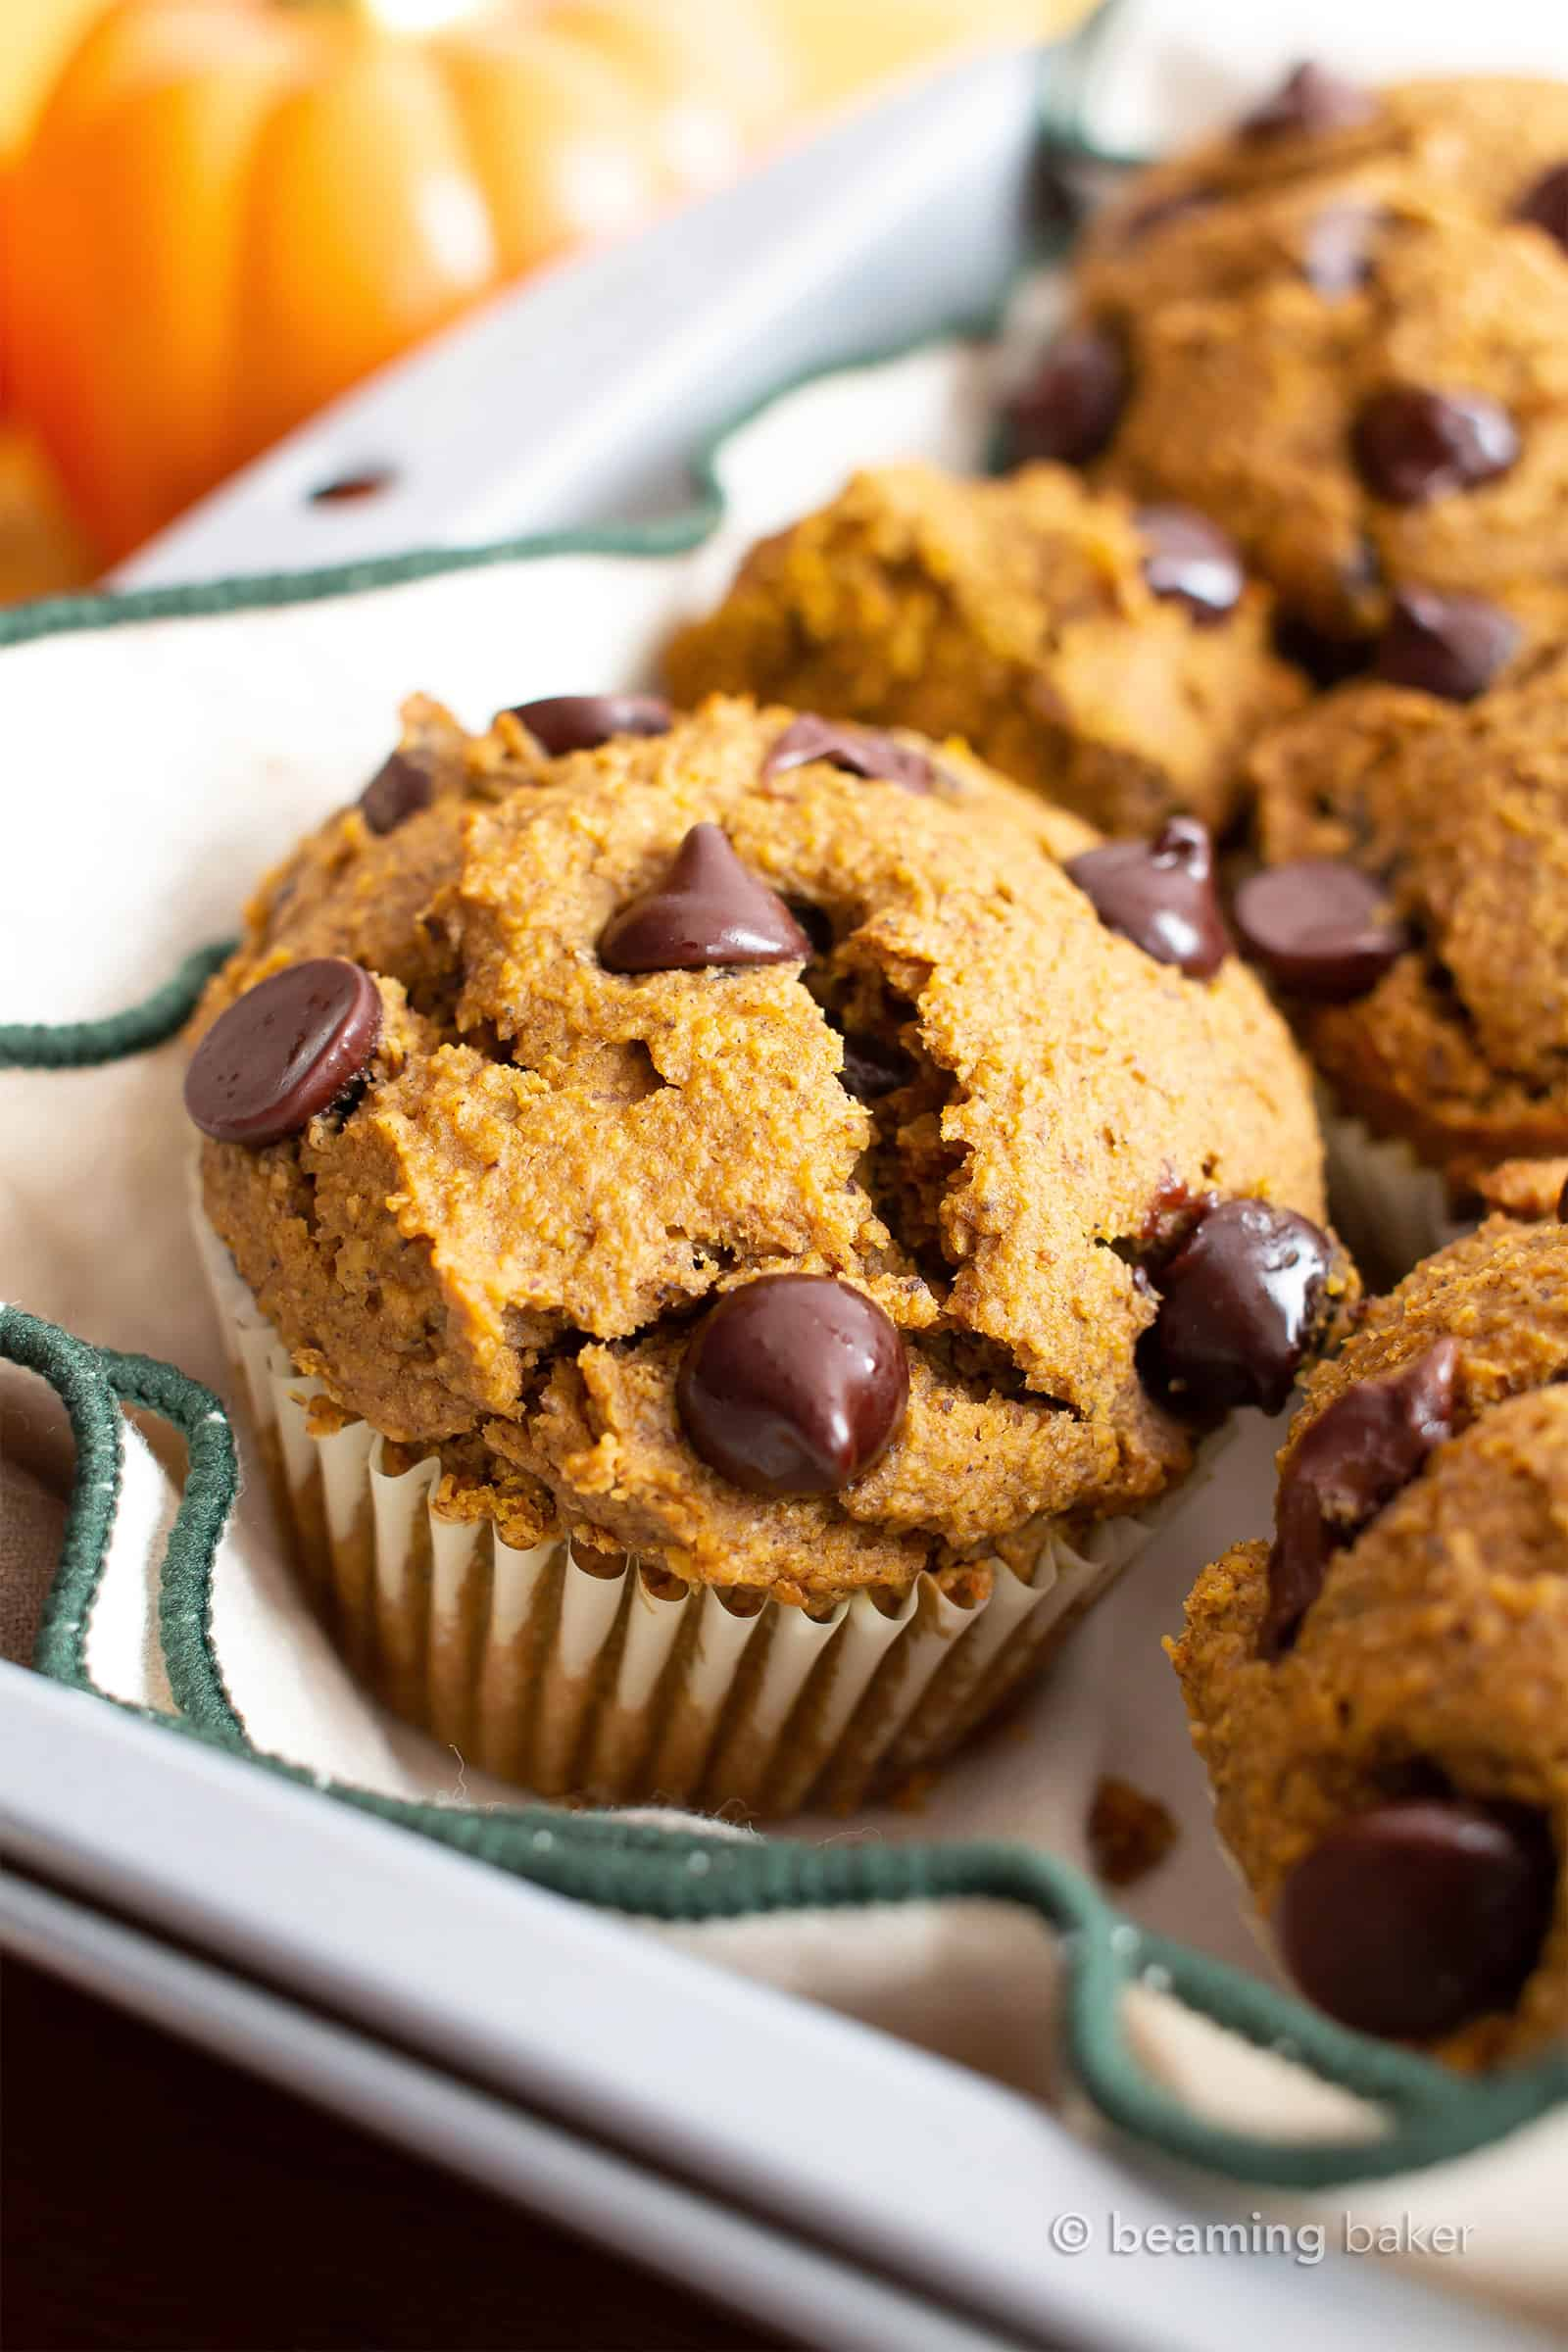 Gluten Free Pumpkin Chocolate Chip Muffins Recipe (GF): this easy gluten free pumpkin muffins recipe makes perfectly spiced GF pumpkin muffins! Made in 1-bowl with healthy, whole ingredients. #Pumpkin #Muffins #Chocolate #GlutenFree #Vegan | Recipe at BeamingBaker.com